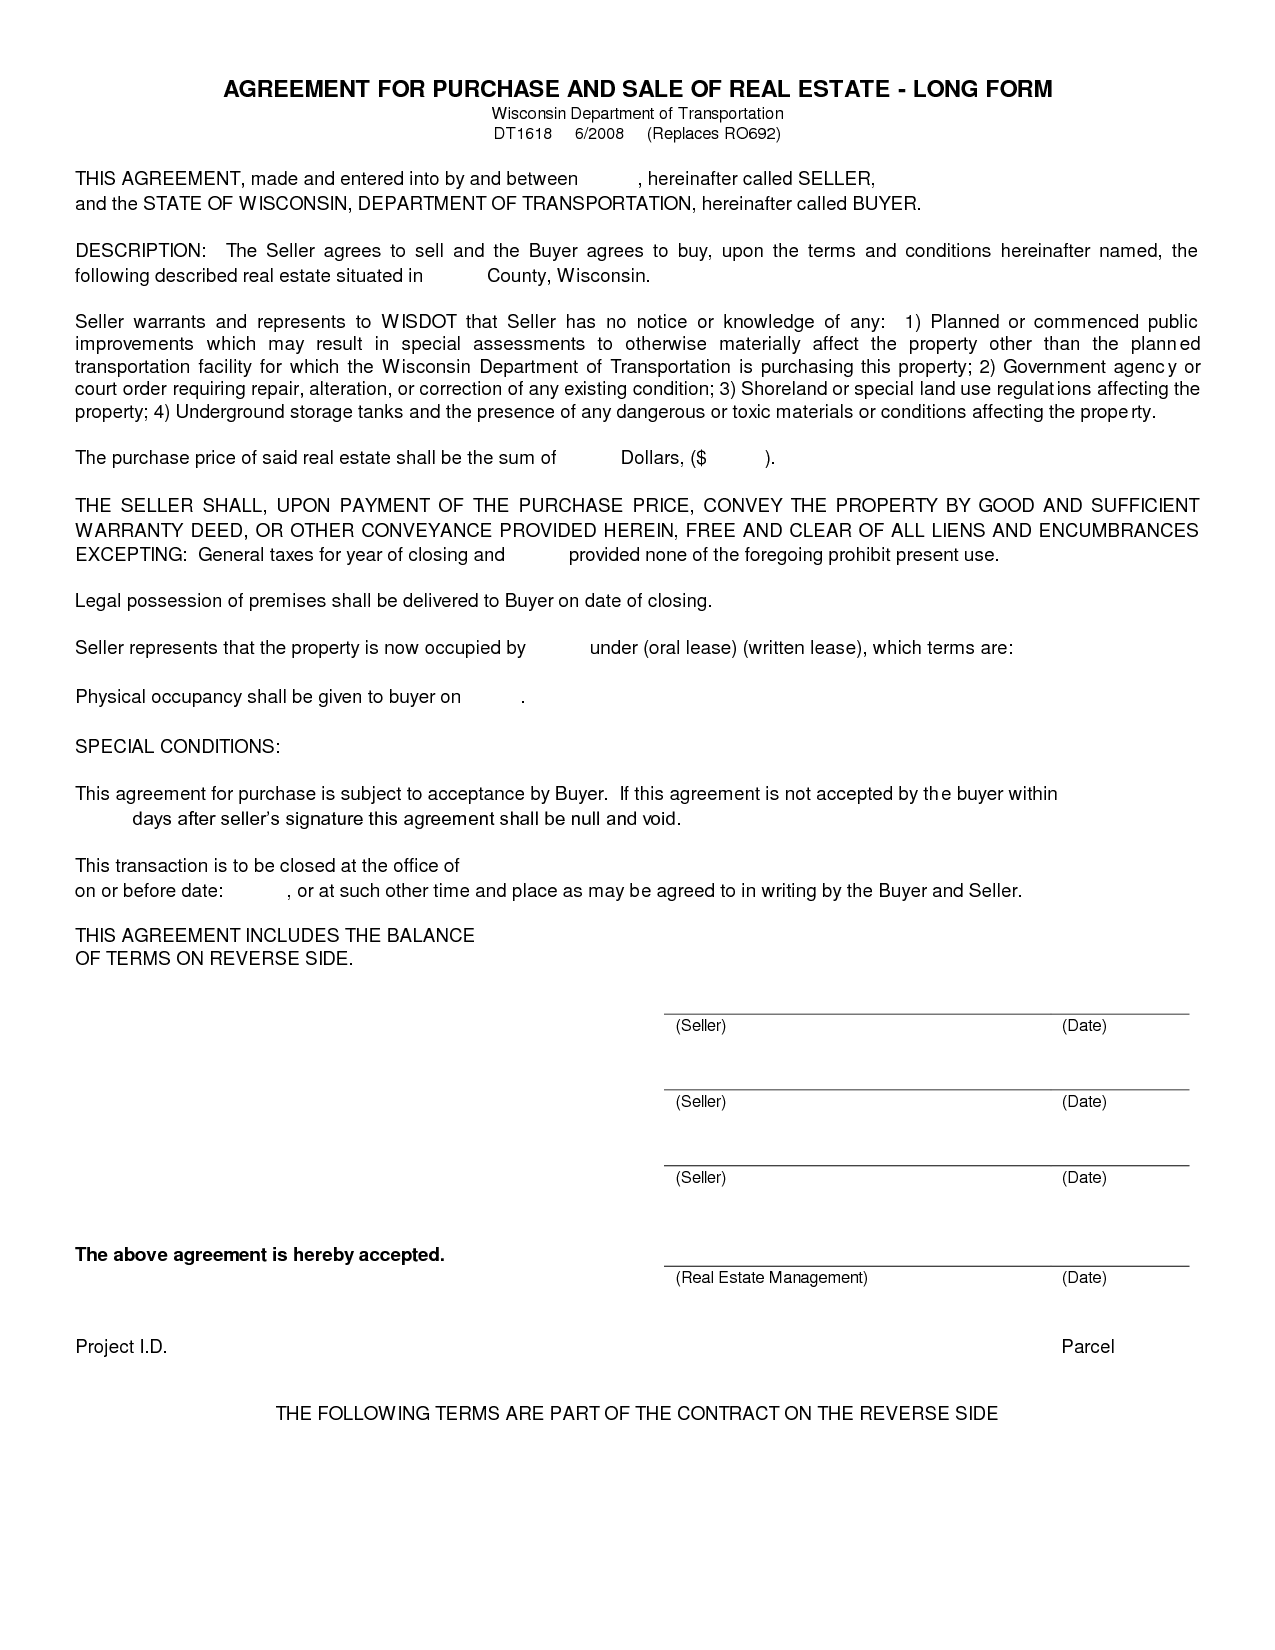 Free blank purchase agreement form images agreement to purchase free blank purchase agreement form images agreement to purchase real estate form free cheaphphosting Choice Image